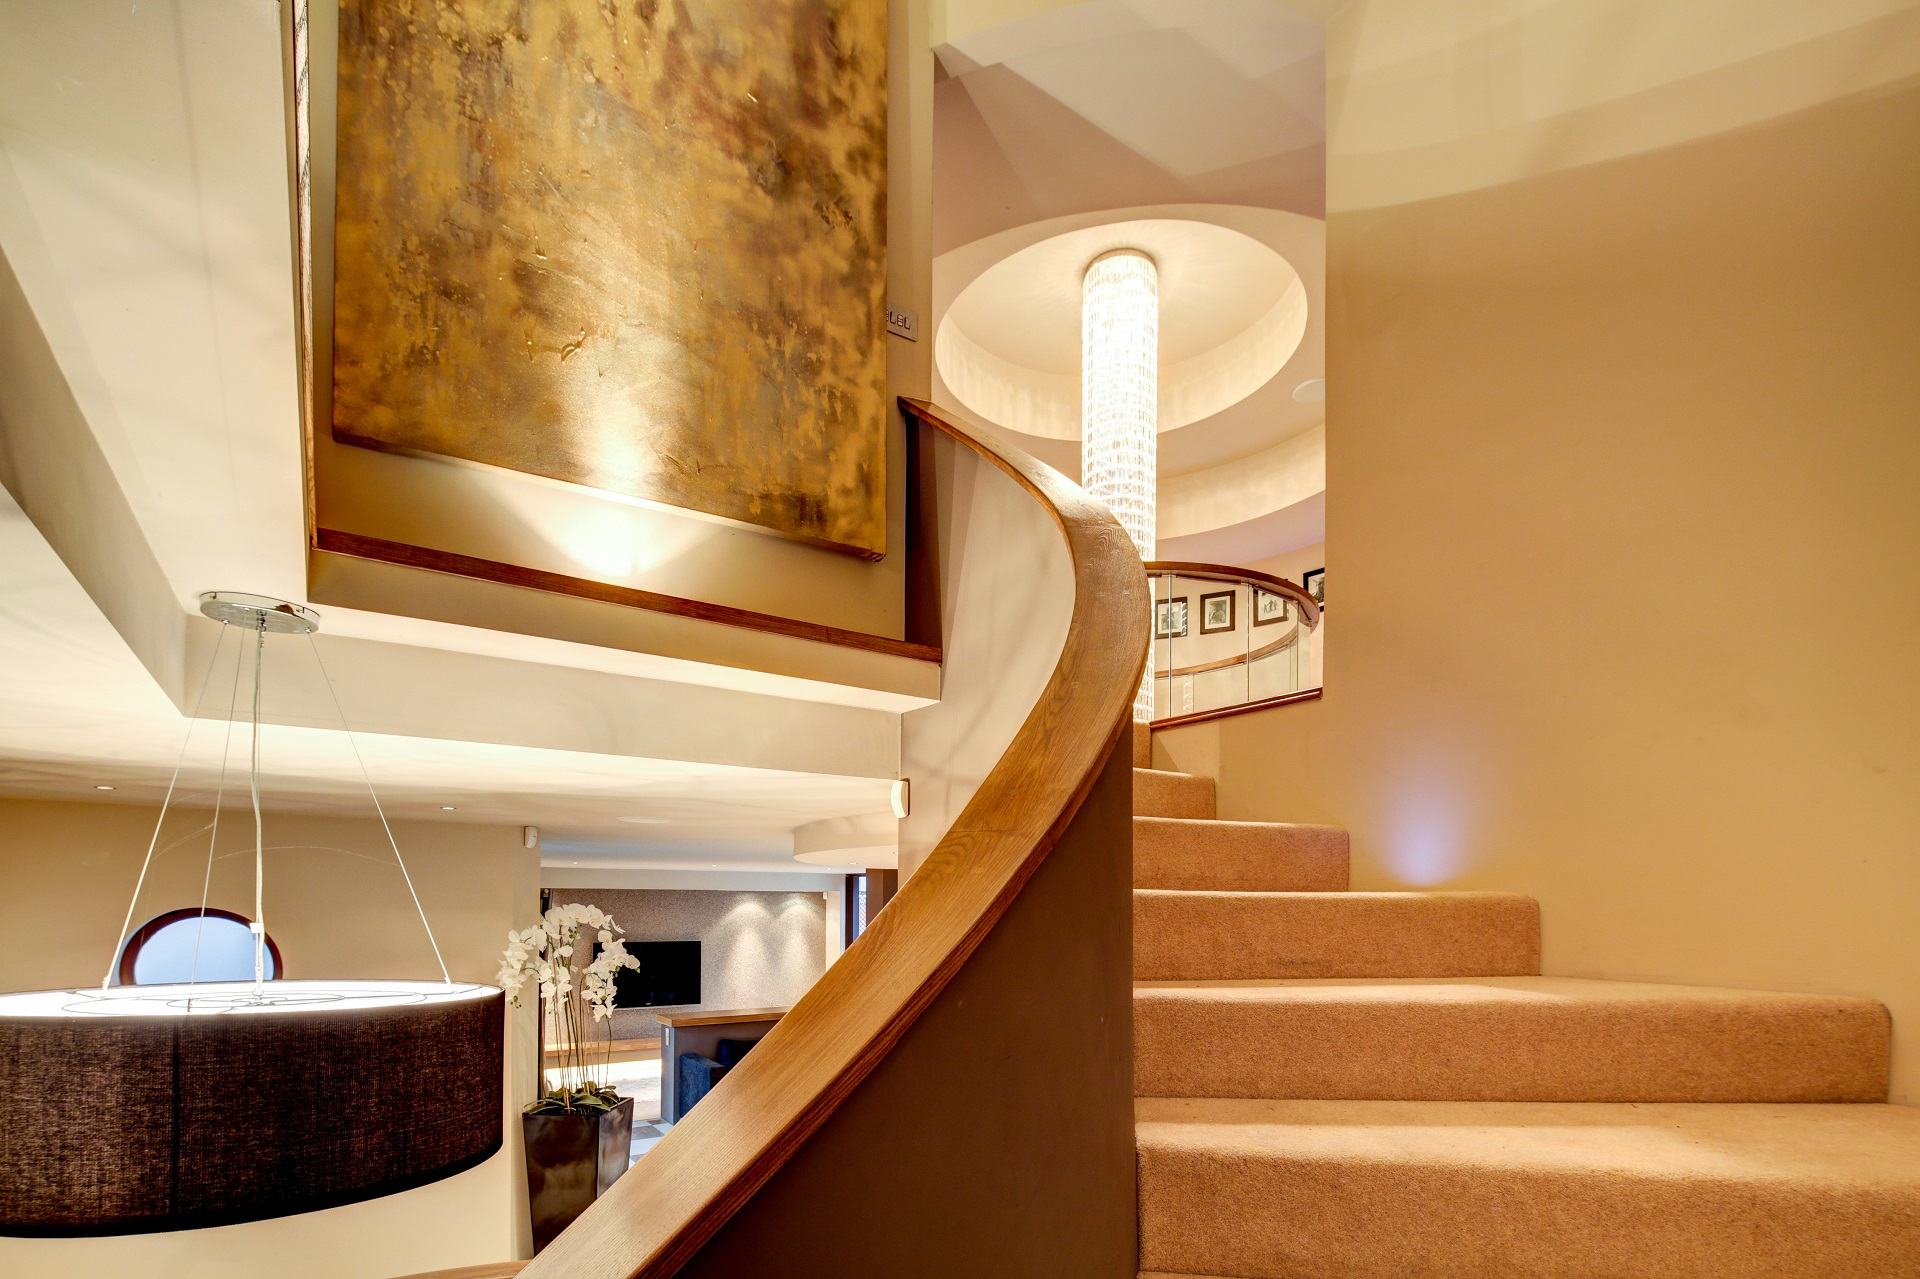 centrepiece curved staircase and Bannister, chandelier